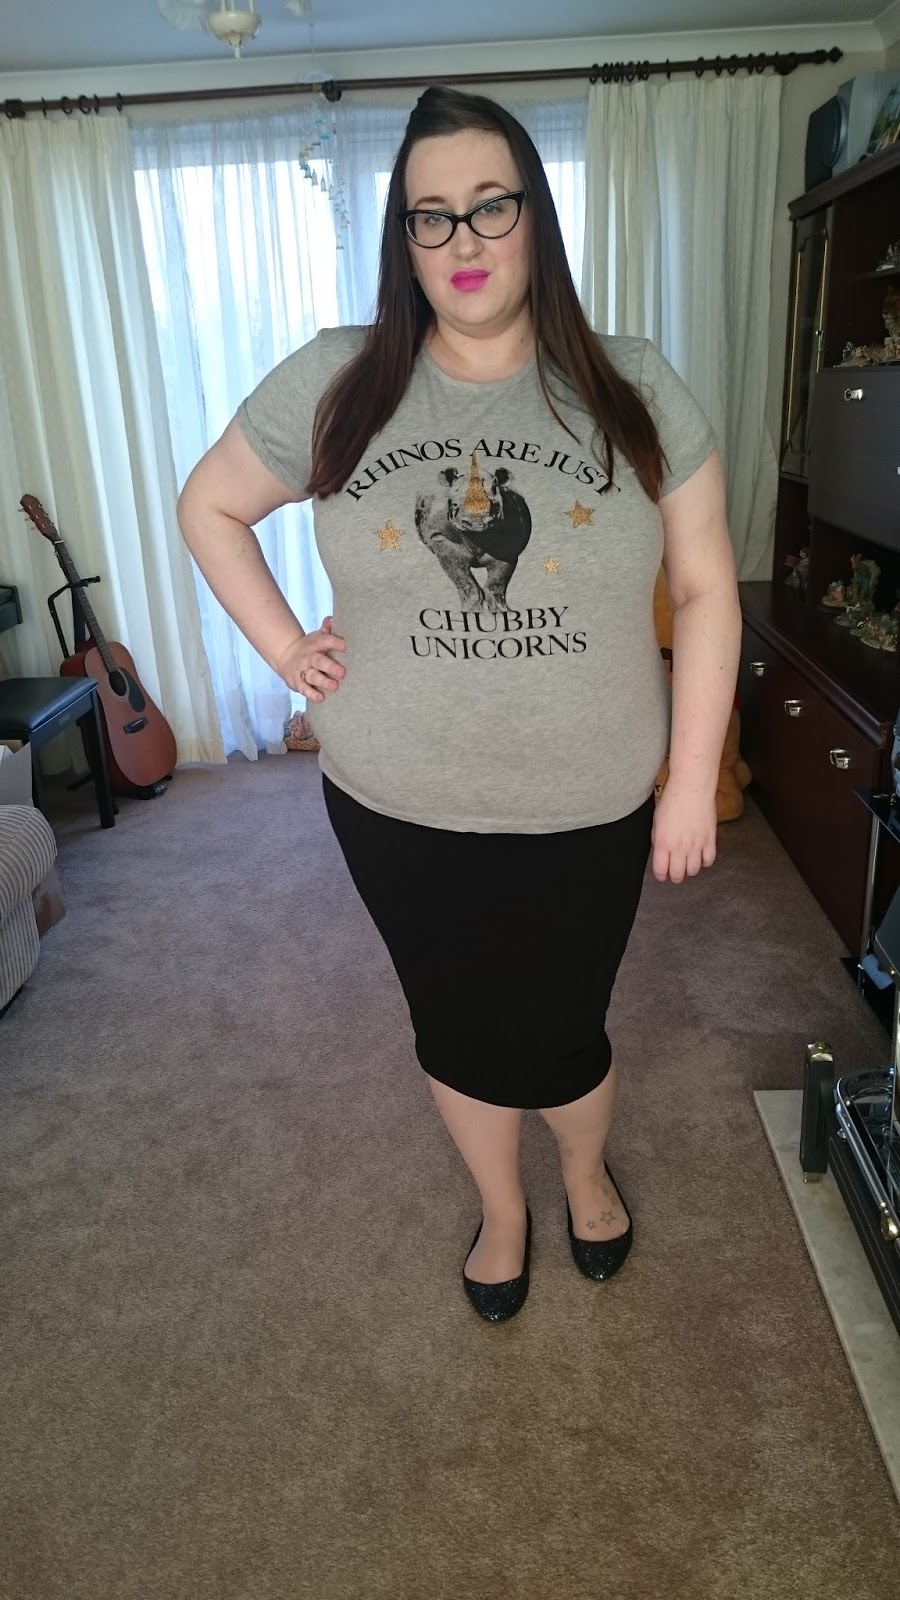 fat woman looking for woman older 20 for relationship Find a mature lover is the #1 older women dating site for singles  i am an attached woman looking for a man to  pretty hardcore serious relationship.